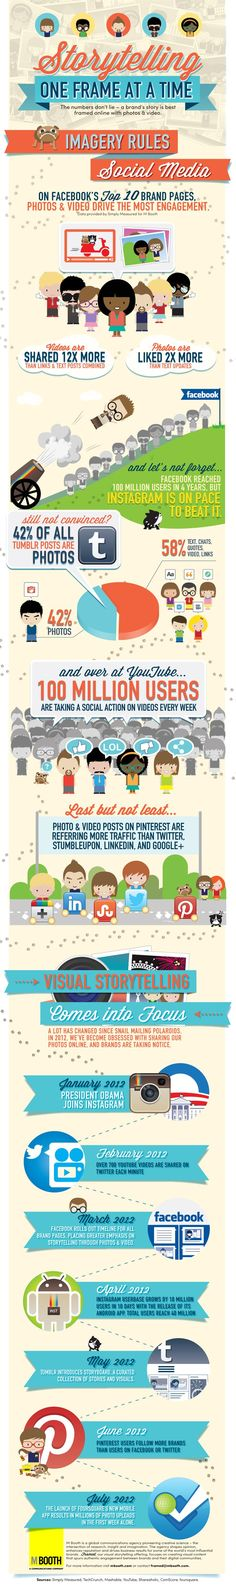 Did you know that photos and videos drive the most engagement on Facebook? Here are some tips to help your brand get more likes and shares.